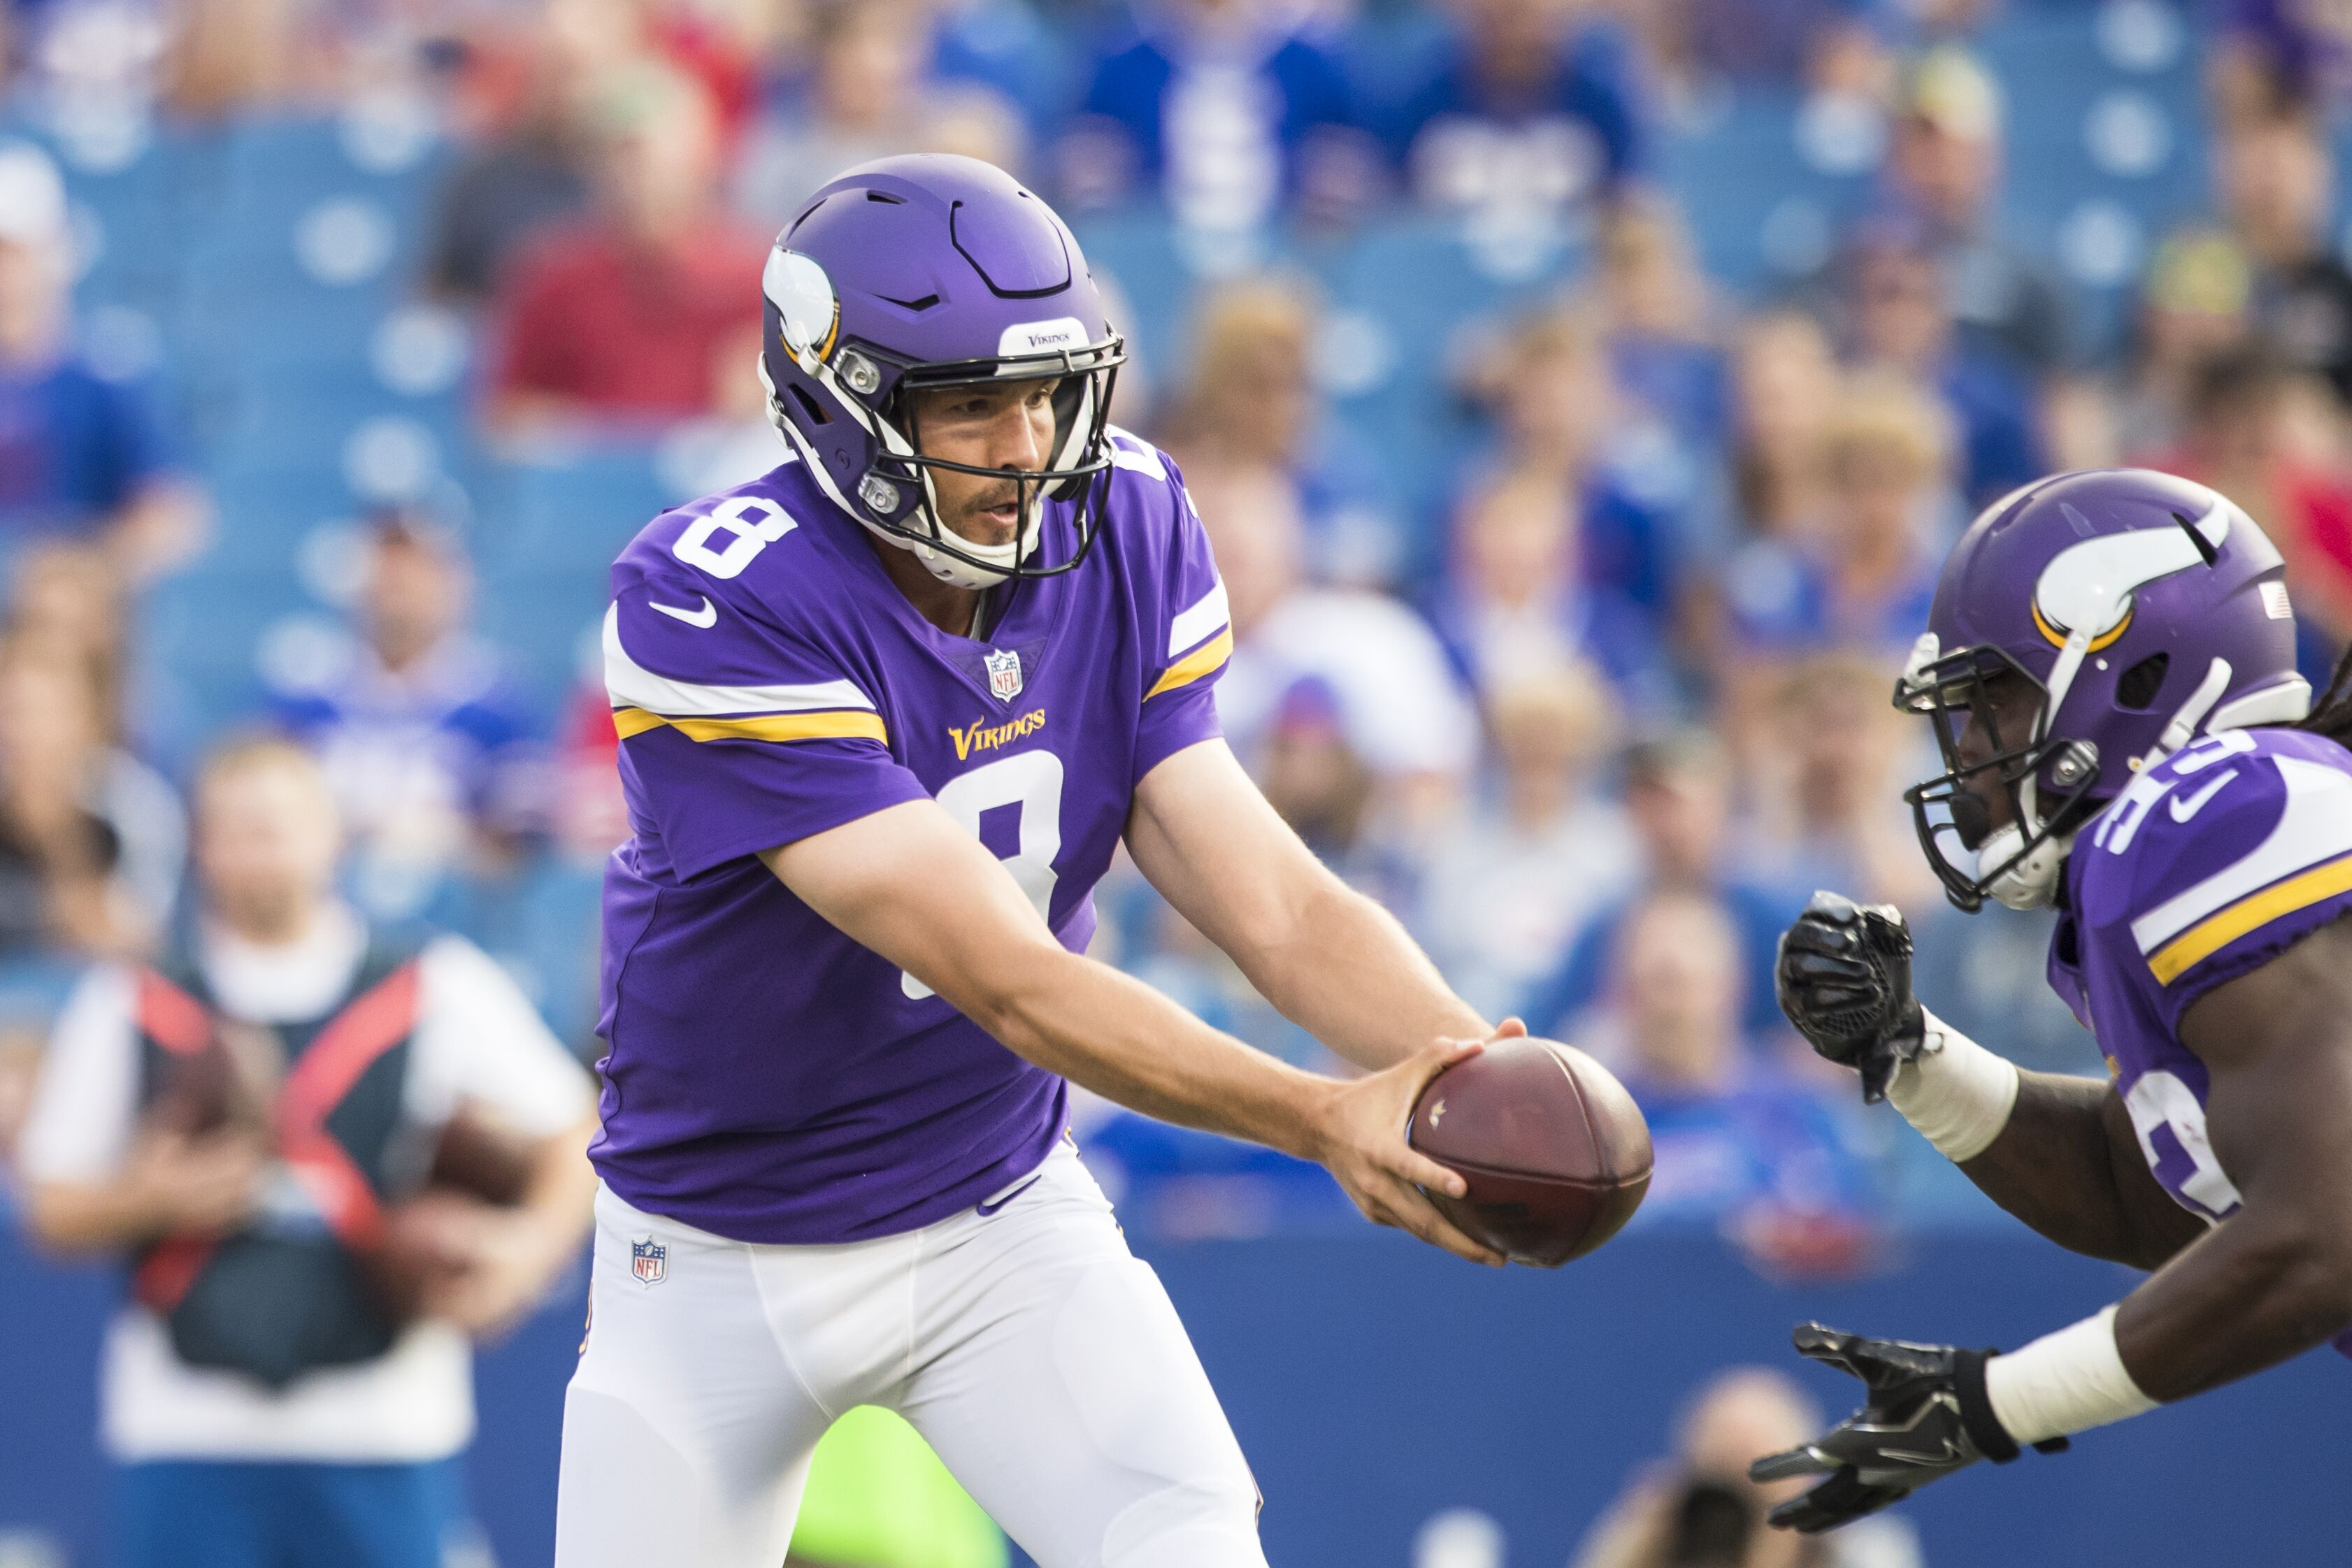 Minnesota Vikings Schedule The official source of the latest Vikings regular season and preseason schedule